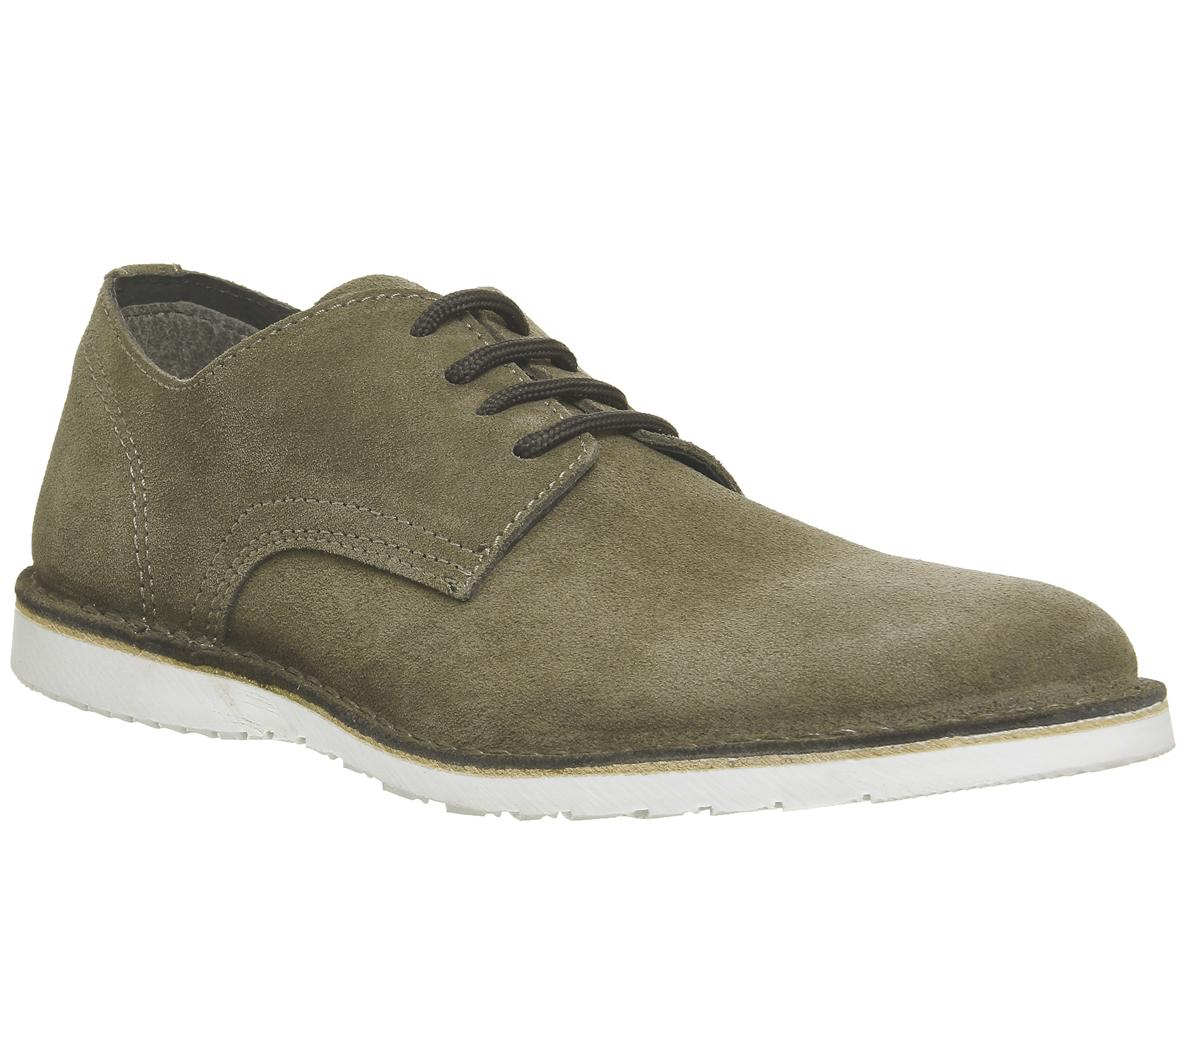 Gear Wedge Shoes